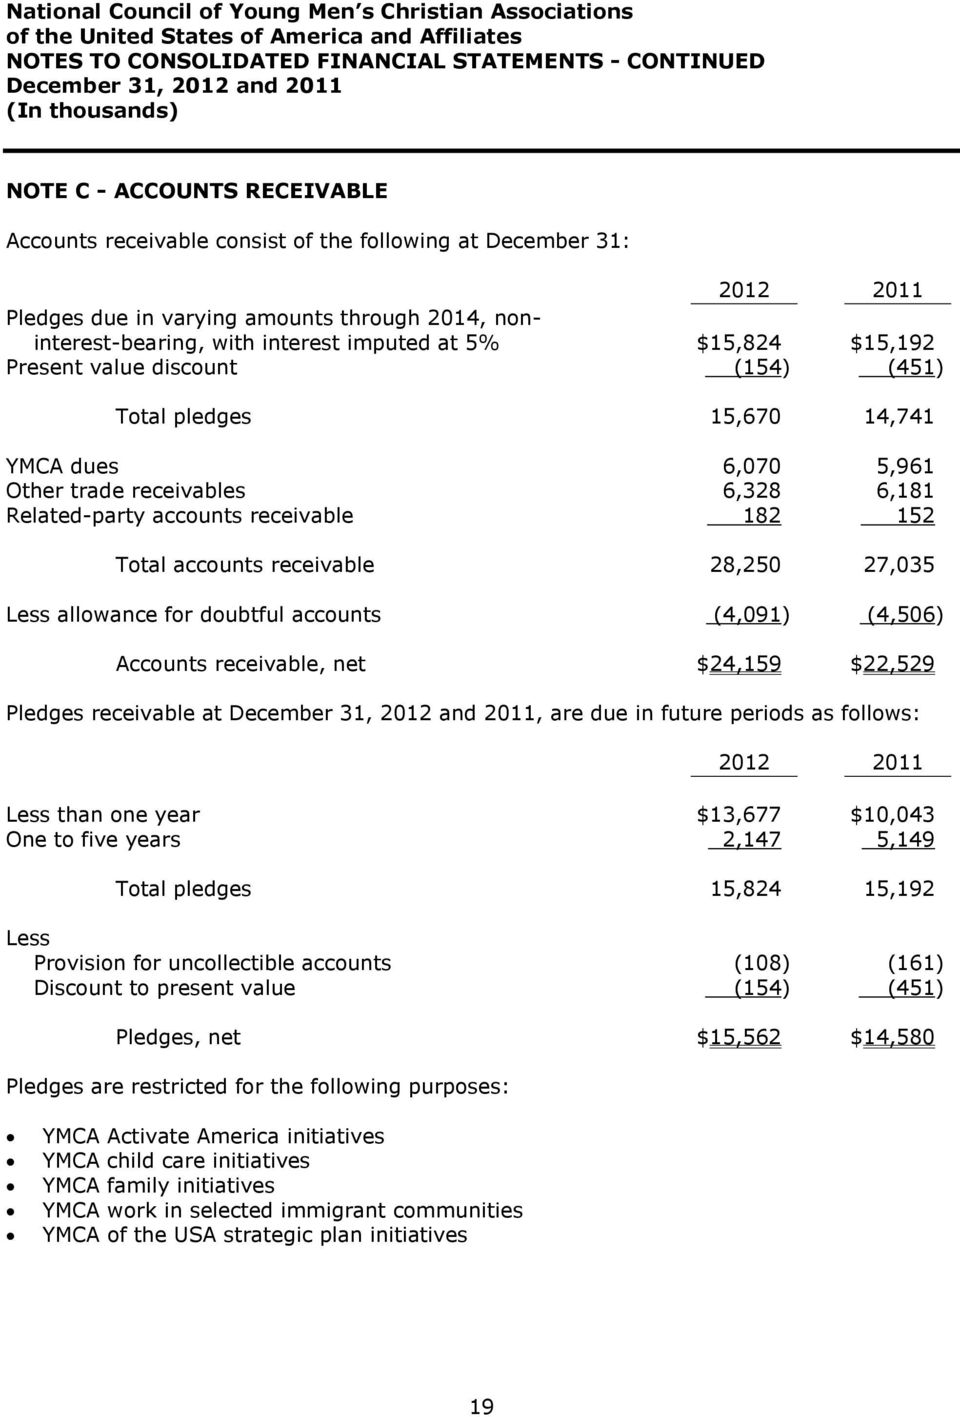 receivables 6,328 6,181 Related-party accounts receivable 182 152 Total accounts receivable 28,250 27,035 Less allowance for doubtful accounts (4,091) (4,506) Accounts receivable, net $24,159 $22,529